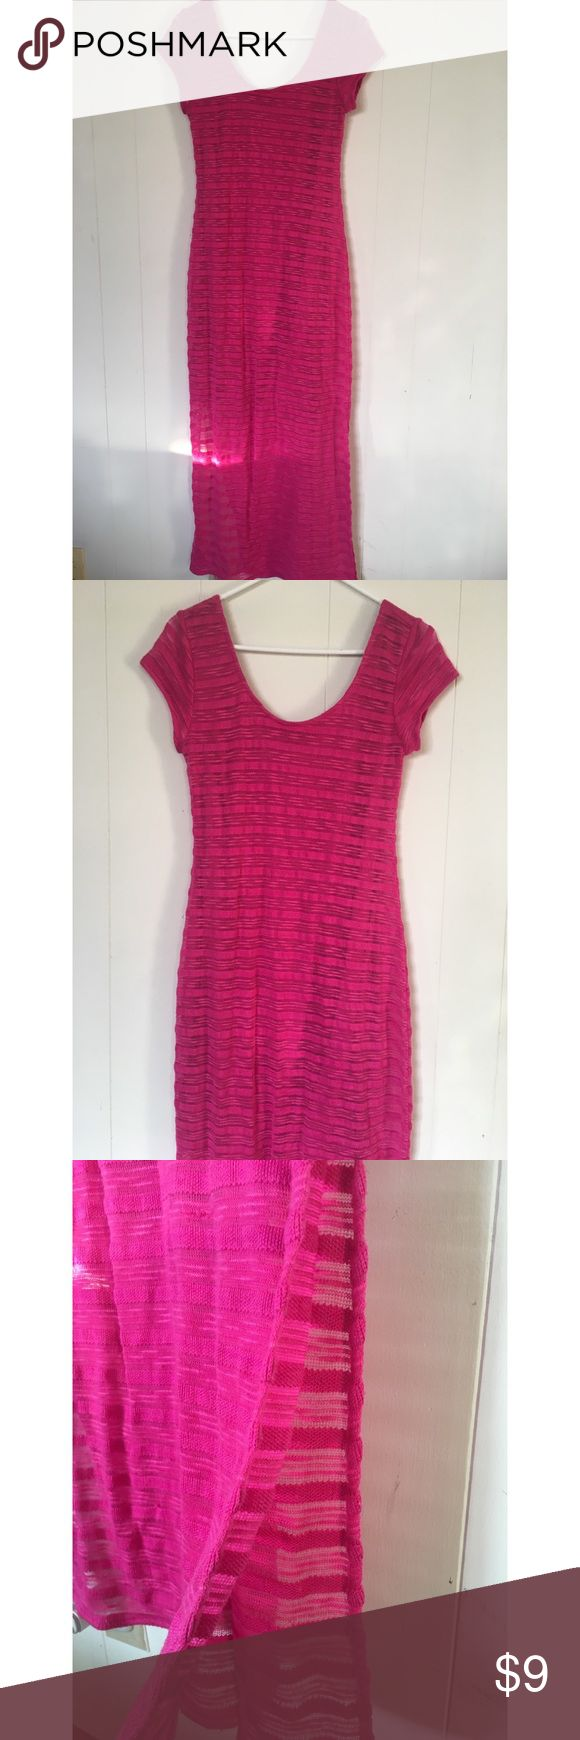 Pretty pink maxi dress This dress is so comfy. I'd keep it but my mom tummy doesn't look so cute in it 😂🤷🏻♀️ It has a slit on the side and has a short underlay that I included a picture of. So cute on! Apt. 9 Dresses Maxi